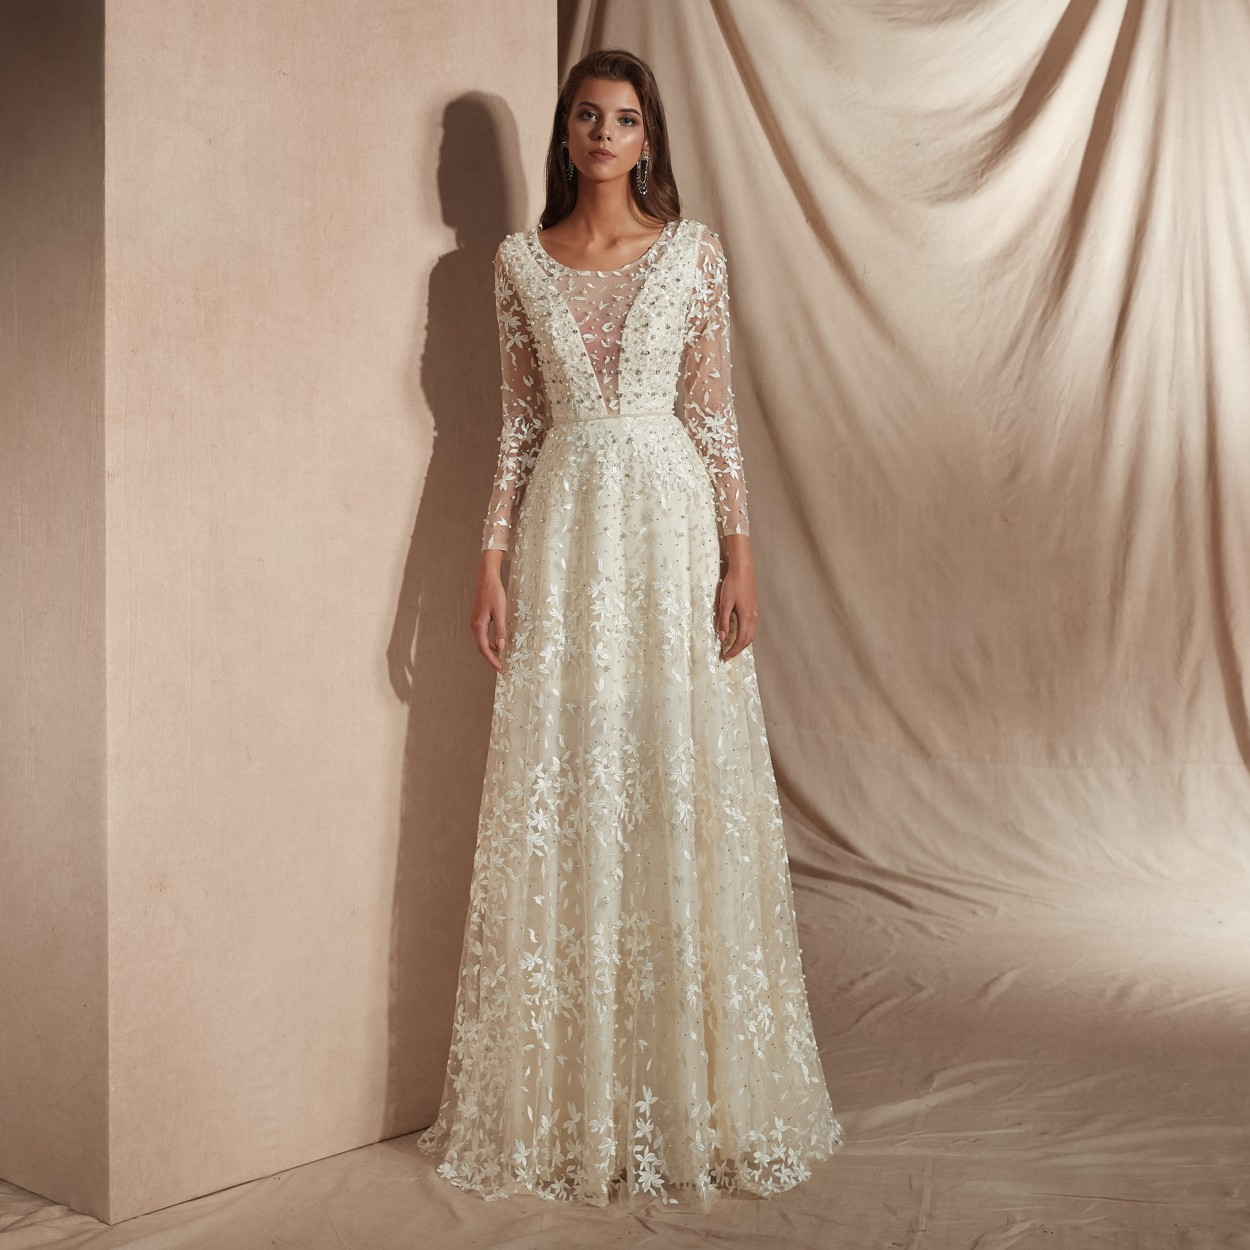 White Lace   Evening     Dresses   Long Beaded Mother Of The Bride   Dresses   Formal   Dress   Women Elegant Puffy   Dresses   Party Plus Size Gown